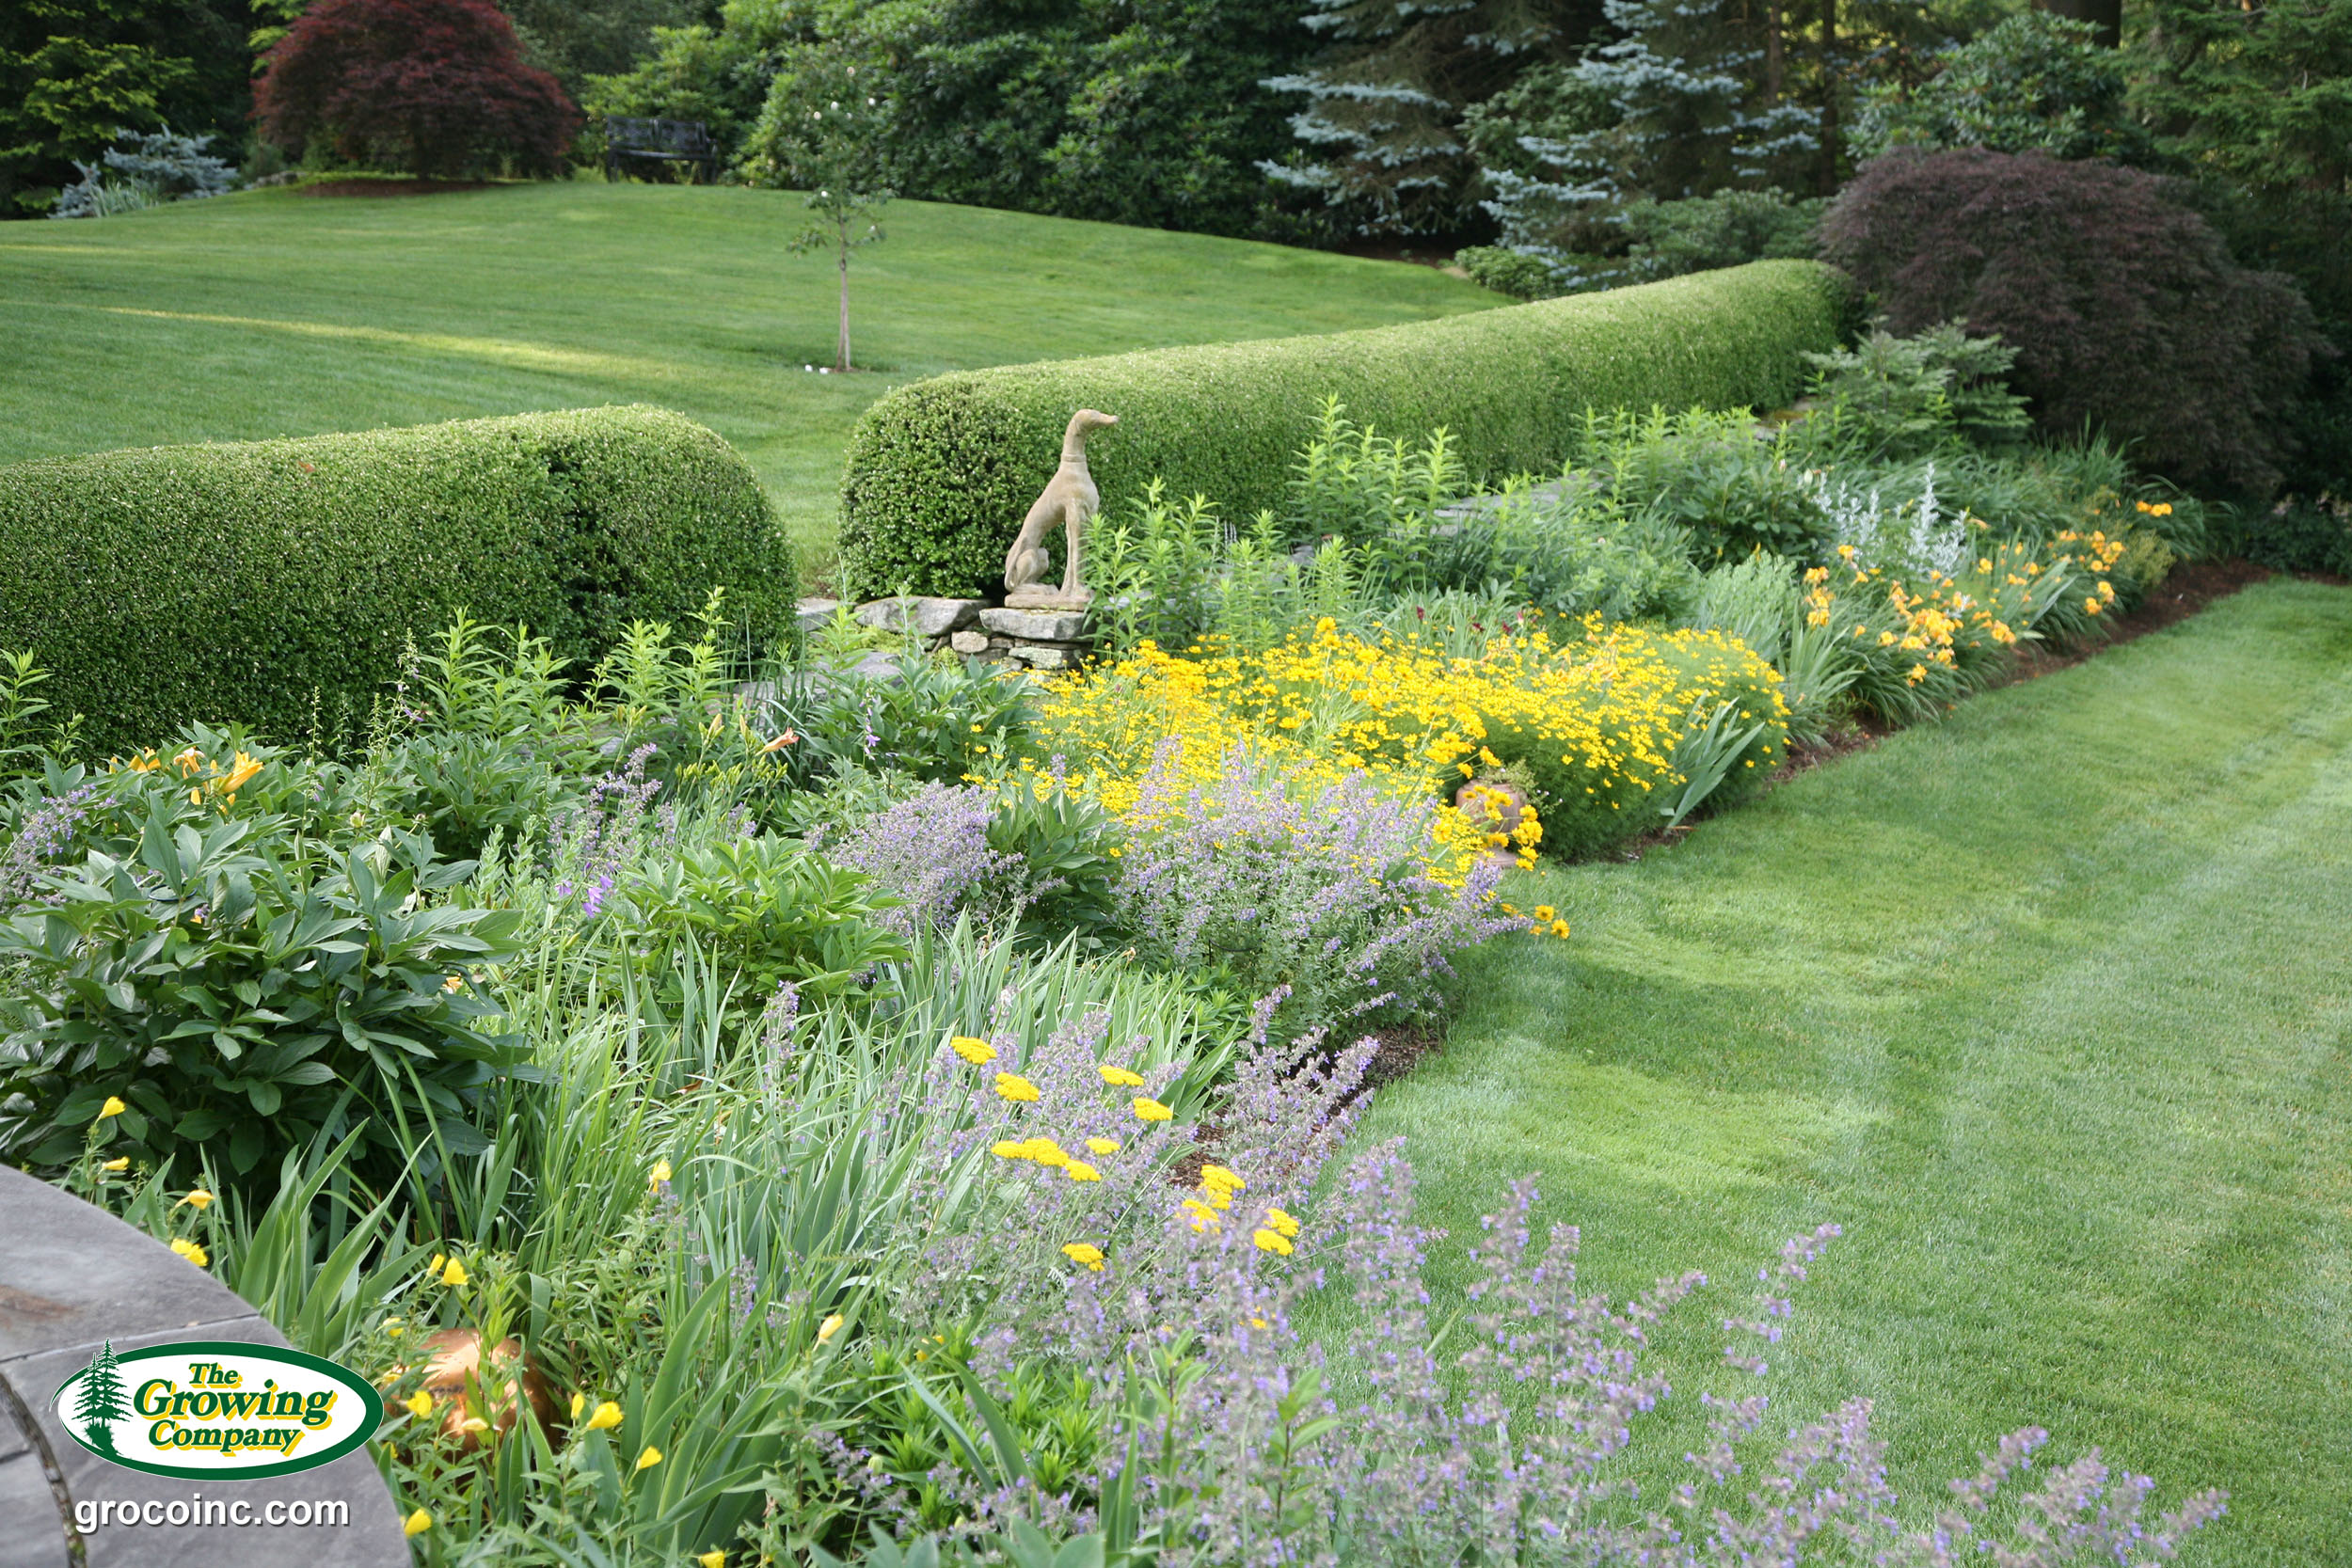 New Orleans Garden Design uptown new orleans custom garden design Serving All Of Cape Cod From Cotuit To Chatham Osterville To Orleans Woods Hole To Wellfleet